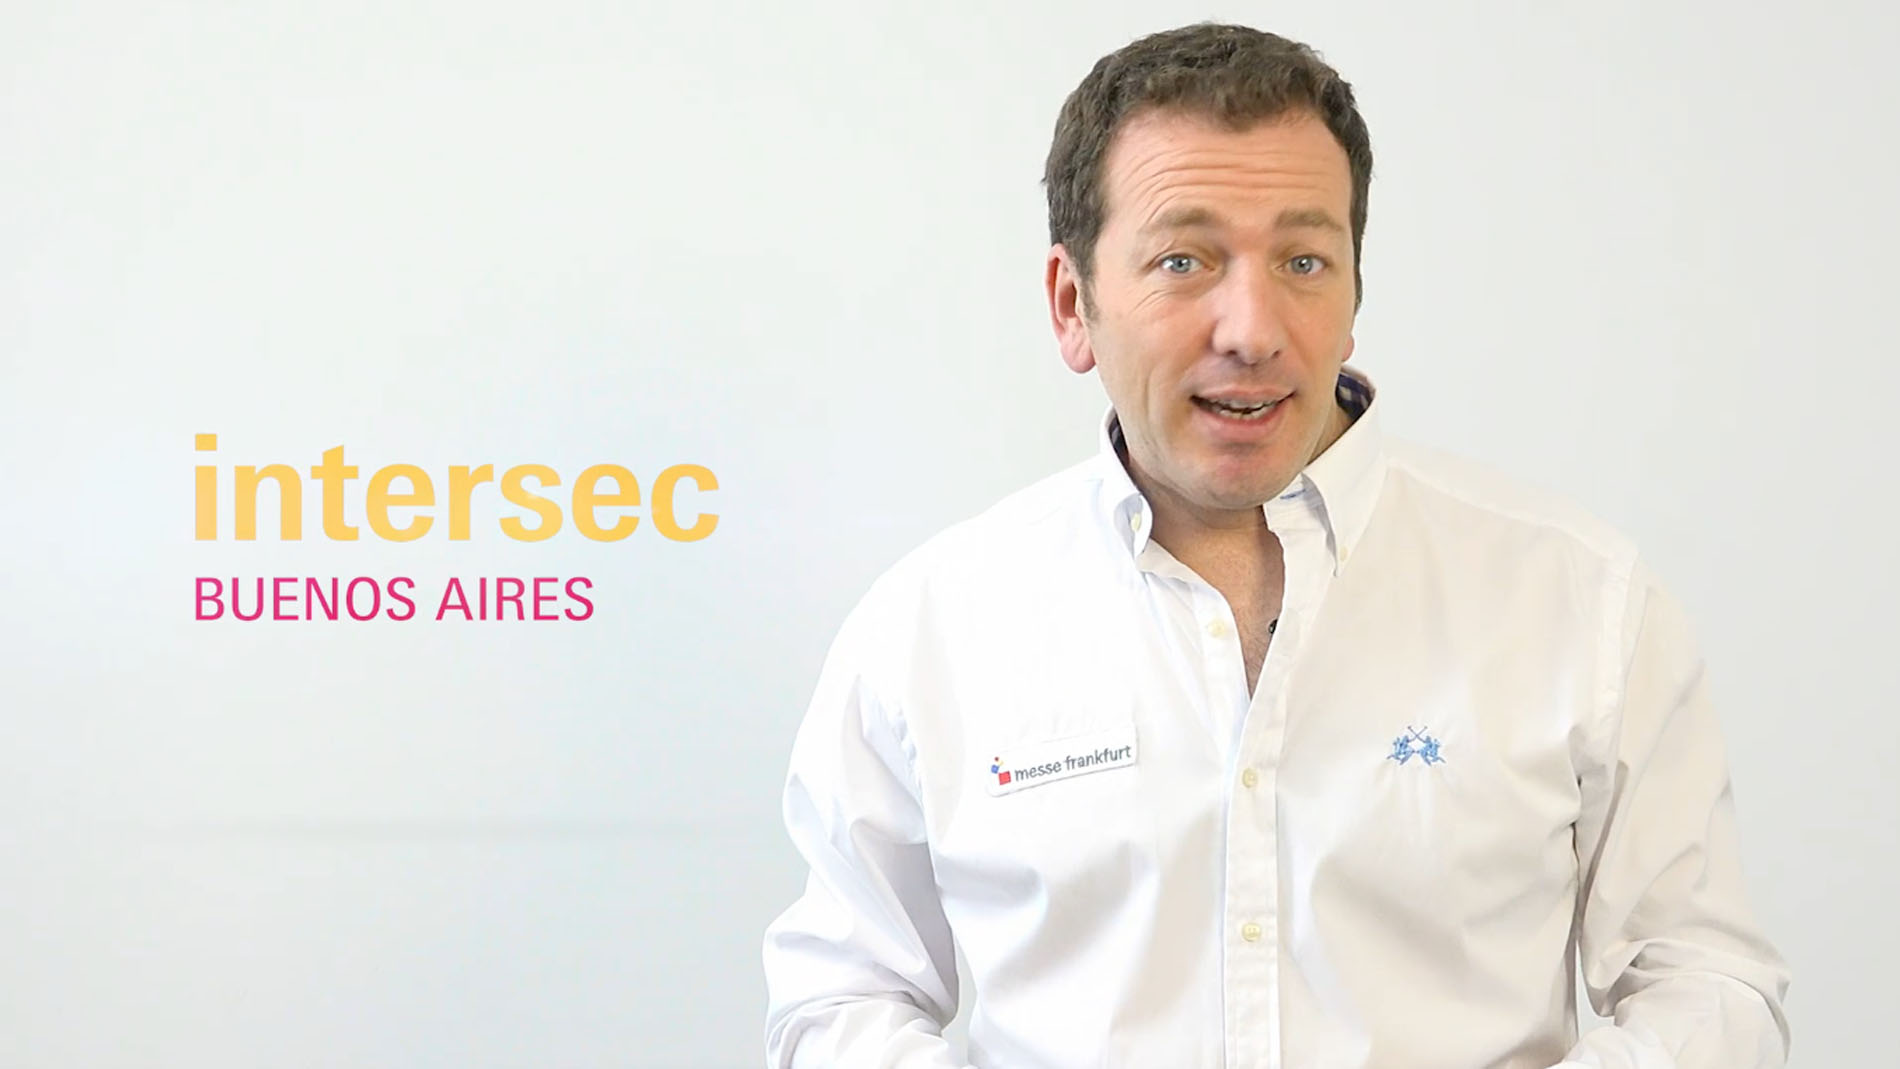 Intersec Buenos Aires: instructional videos